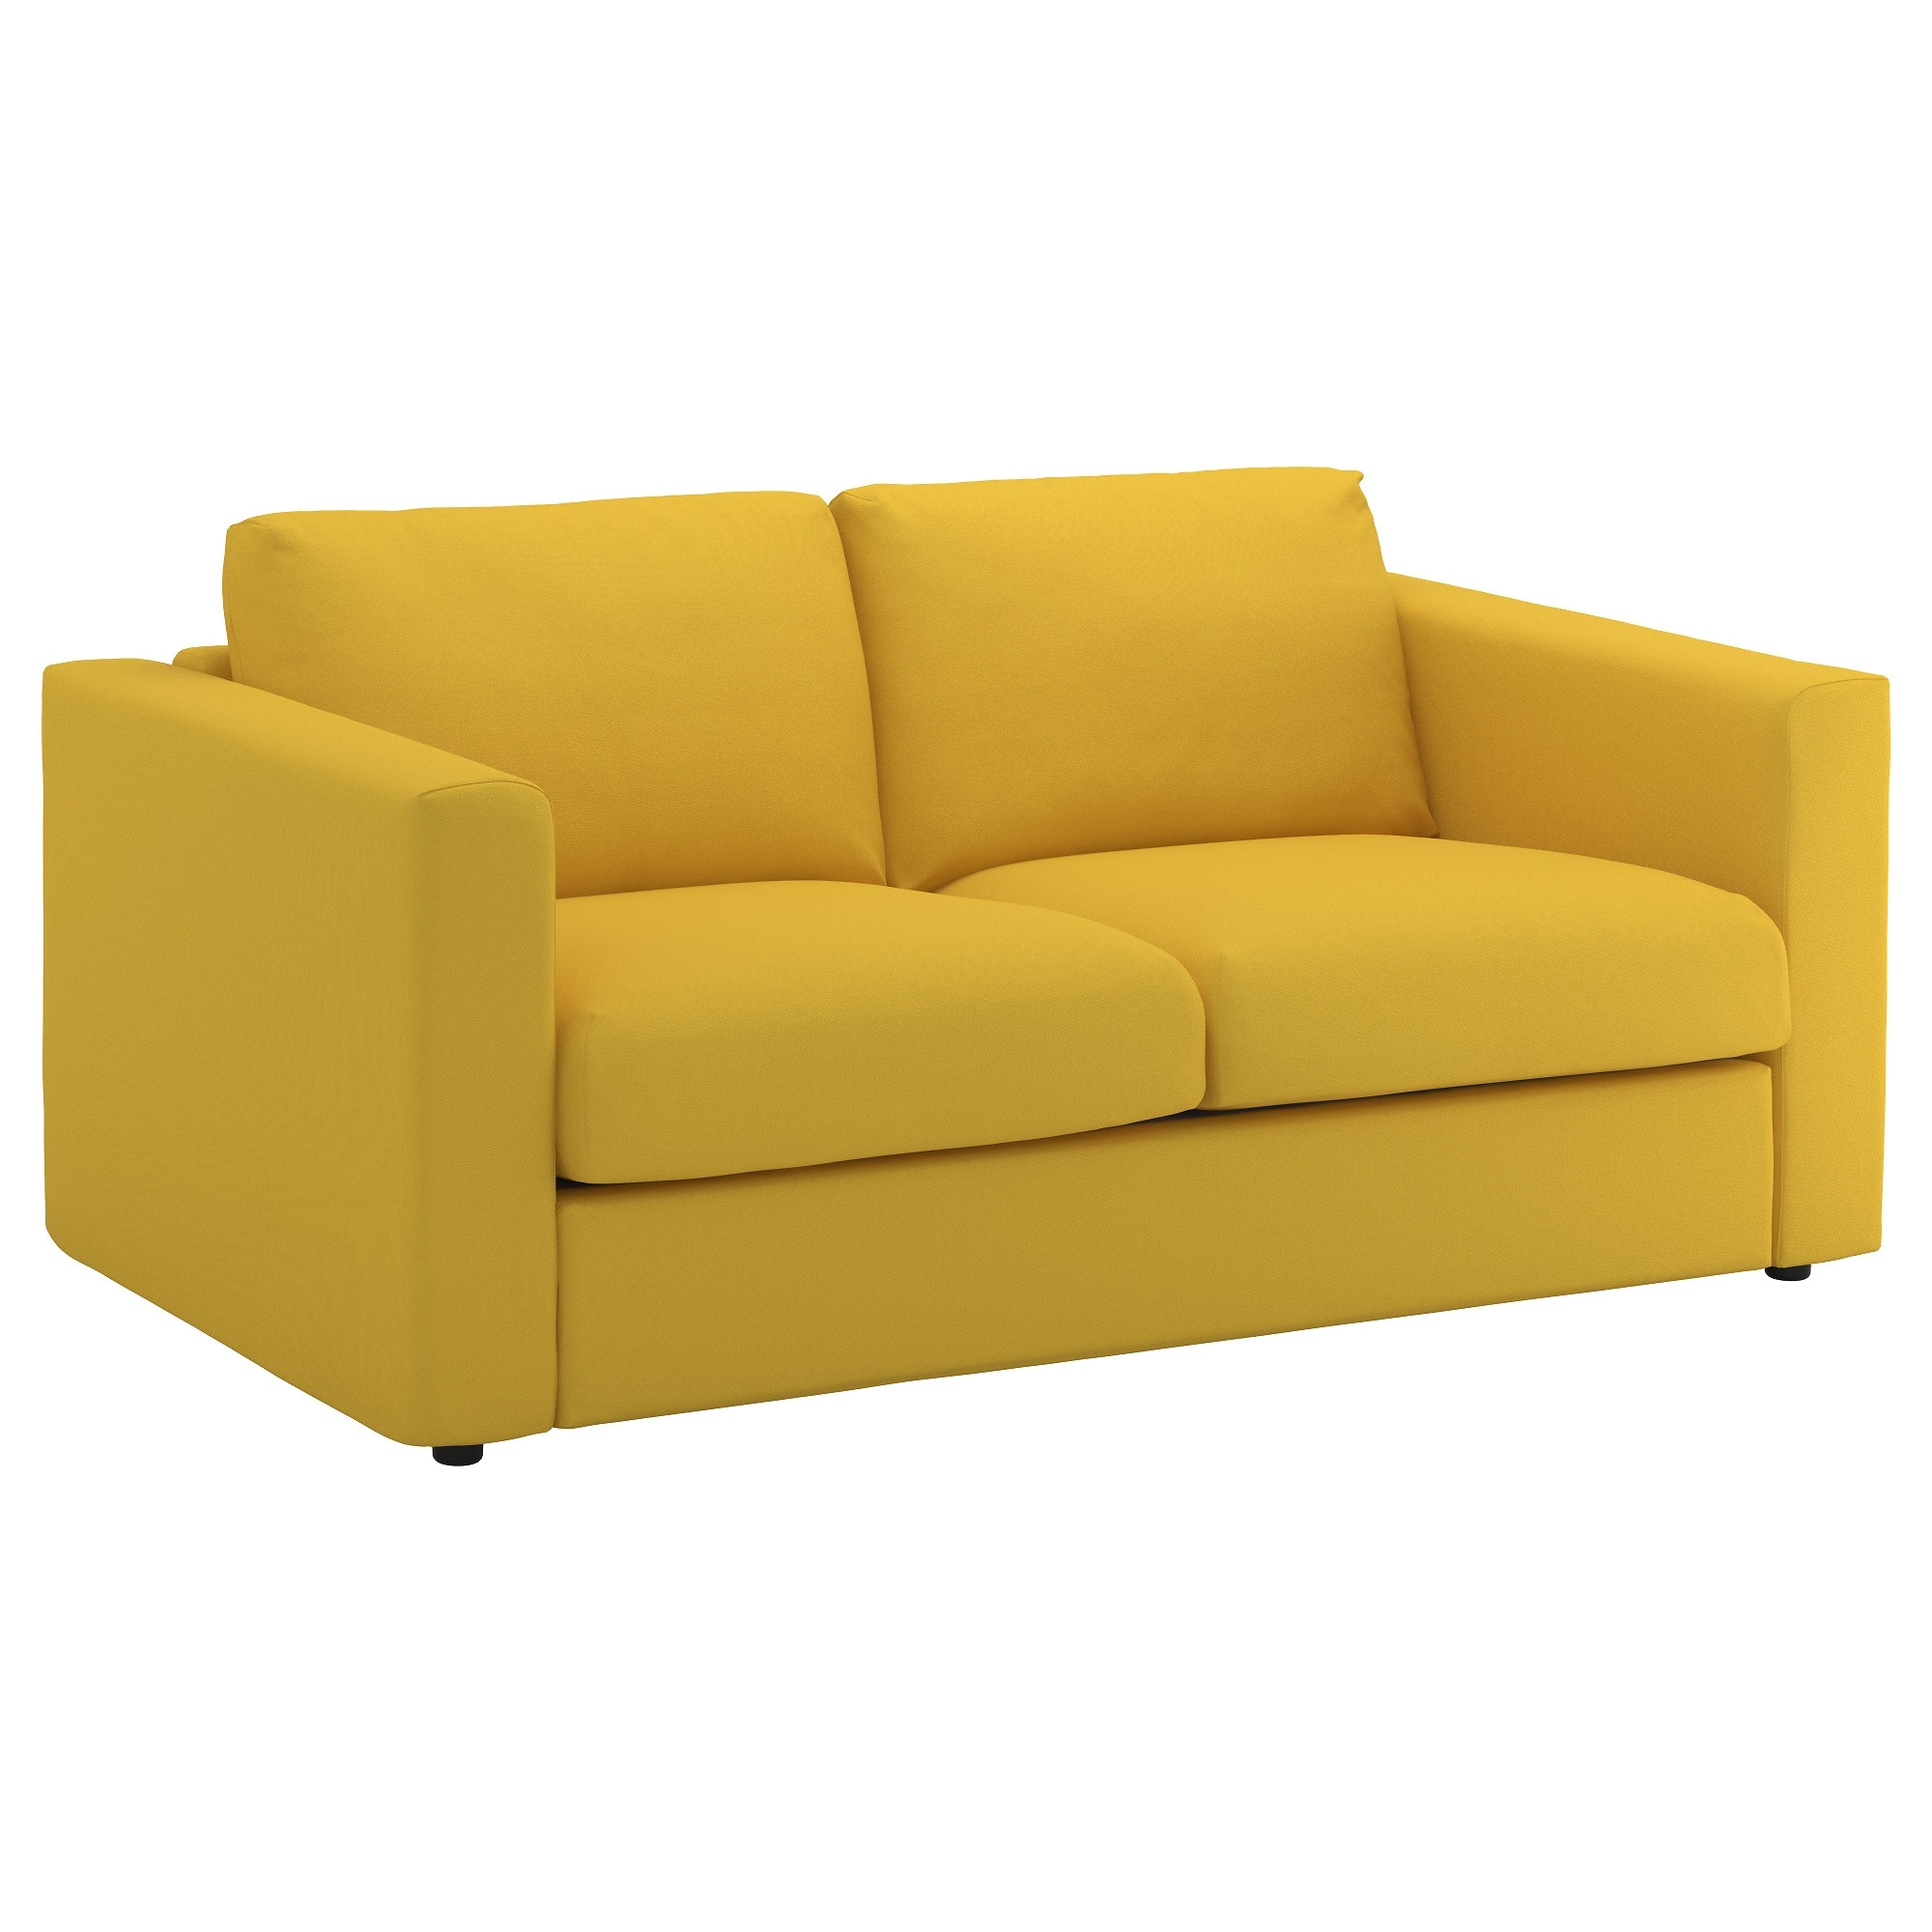 Vimle 2 Seat Sofa Gräsbo Golden Yellow – Ikea Inside Favorite Ikea Two Seater Sofas (Gallery 8 of 15)